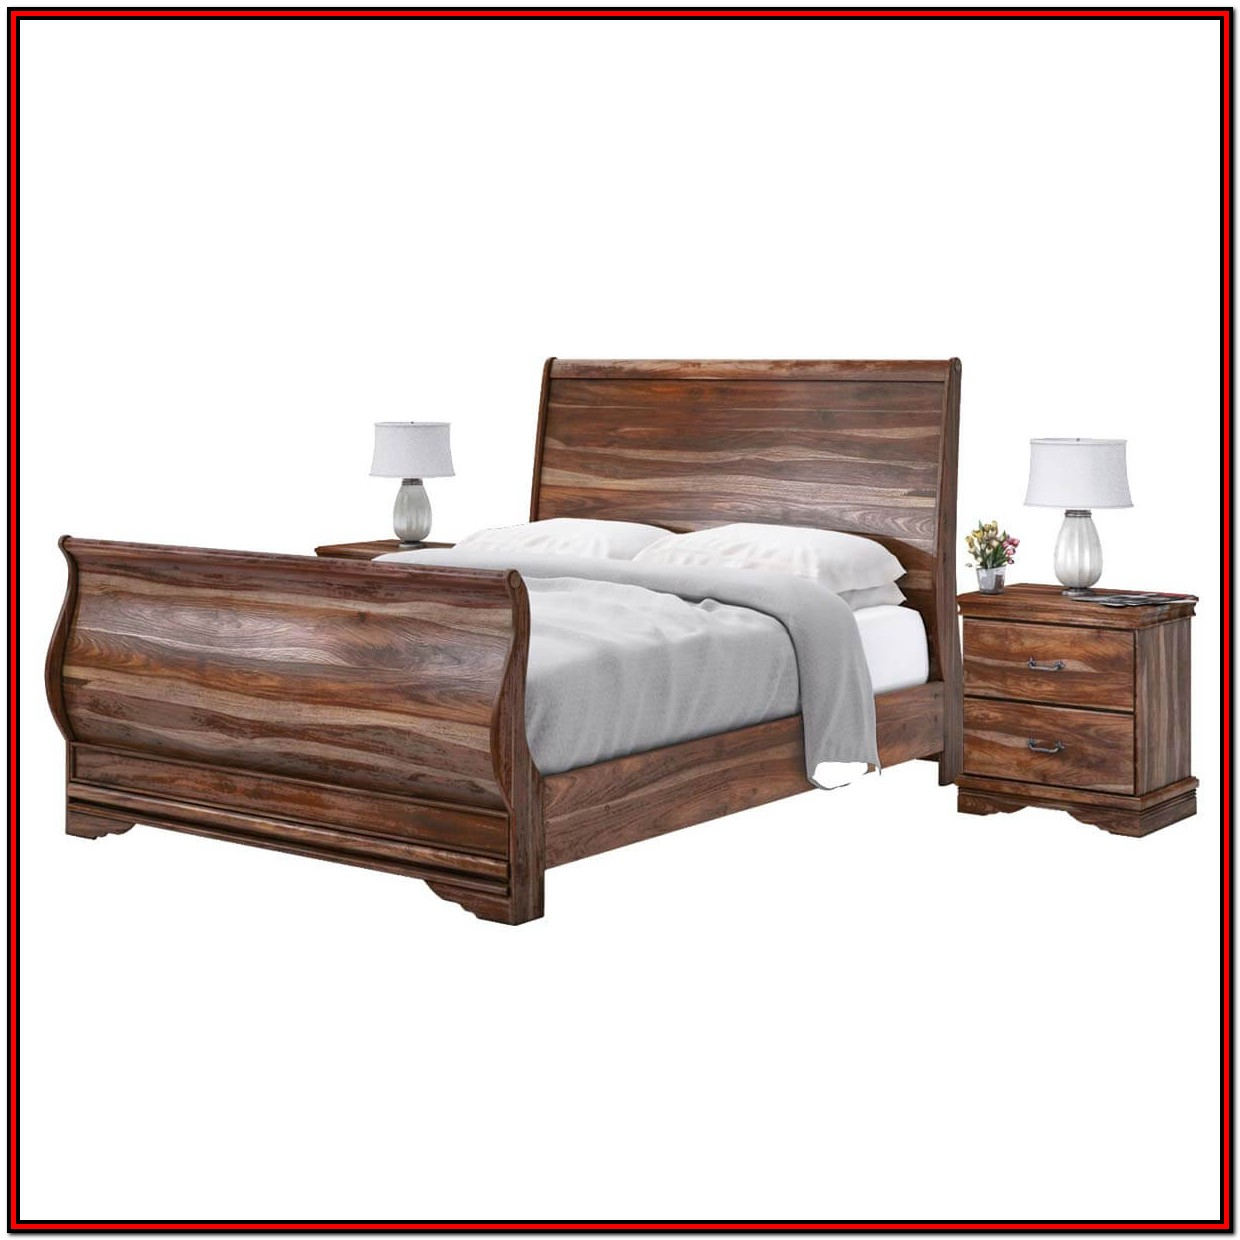 King Size Wooden Platform Bed Frame